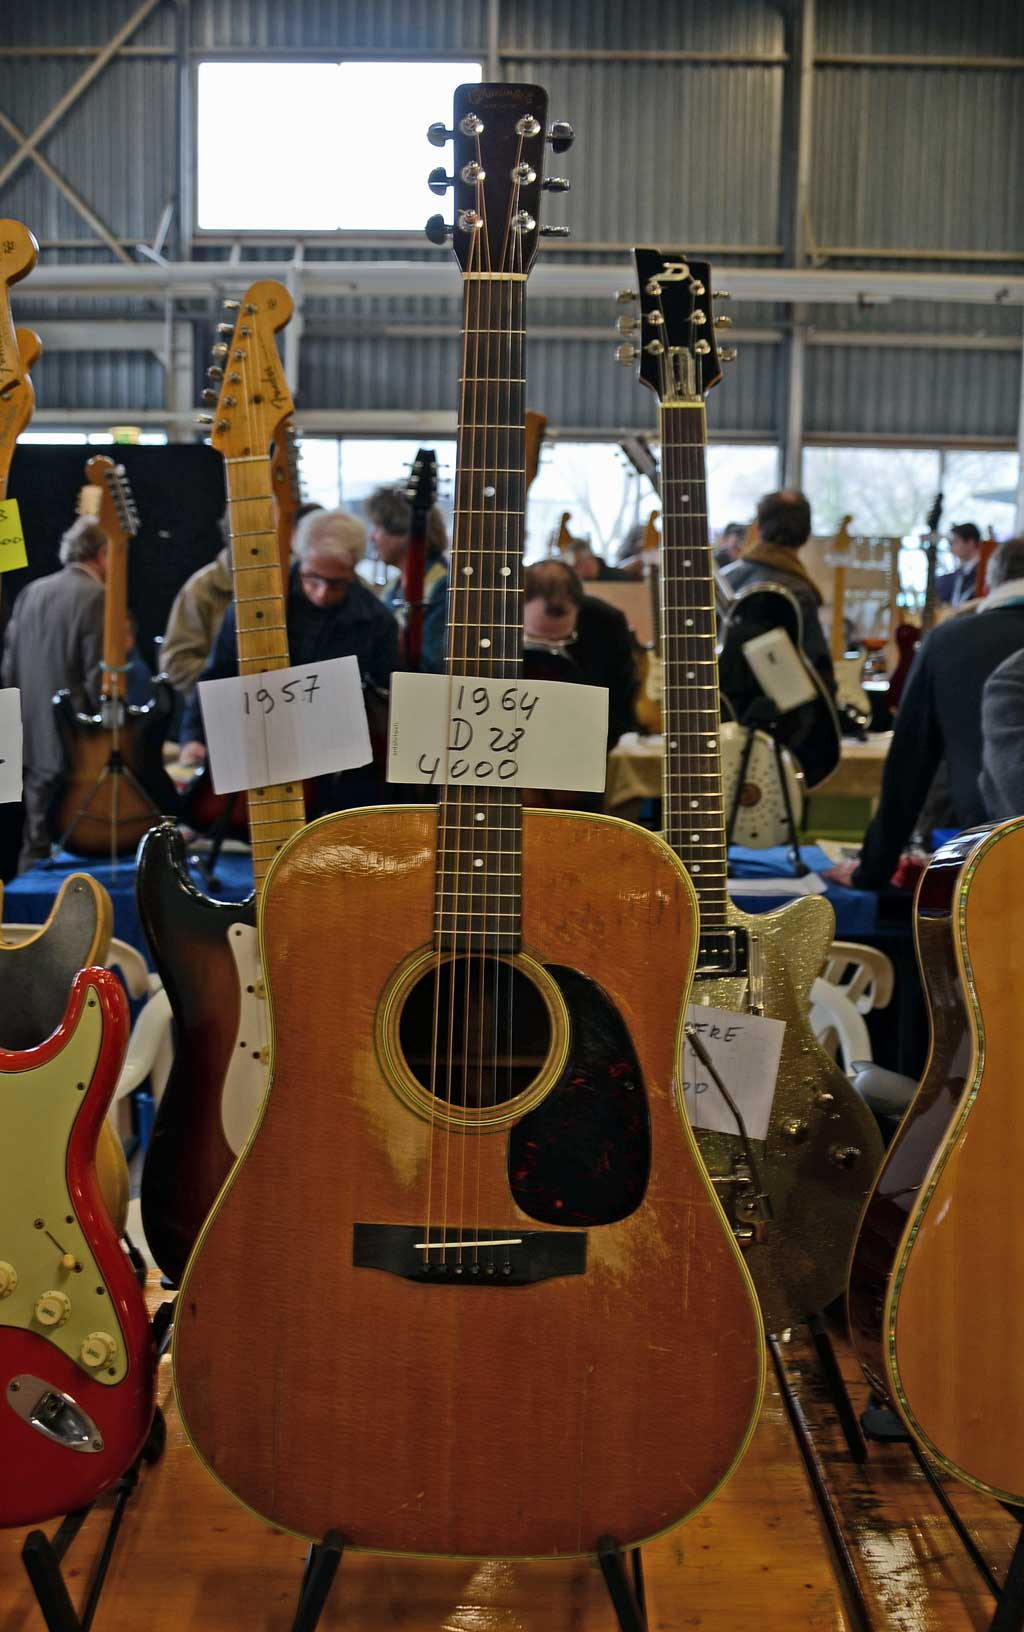 vintage guitar show veenendaal march 2011 - martin d28 from 1964